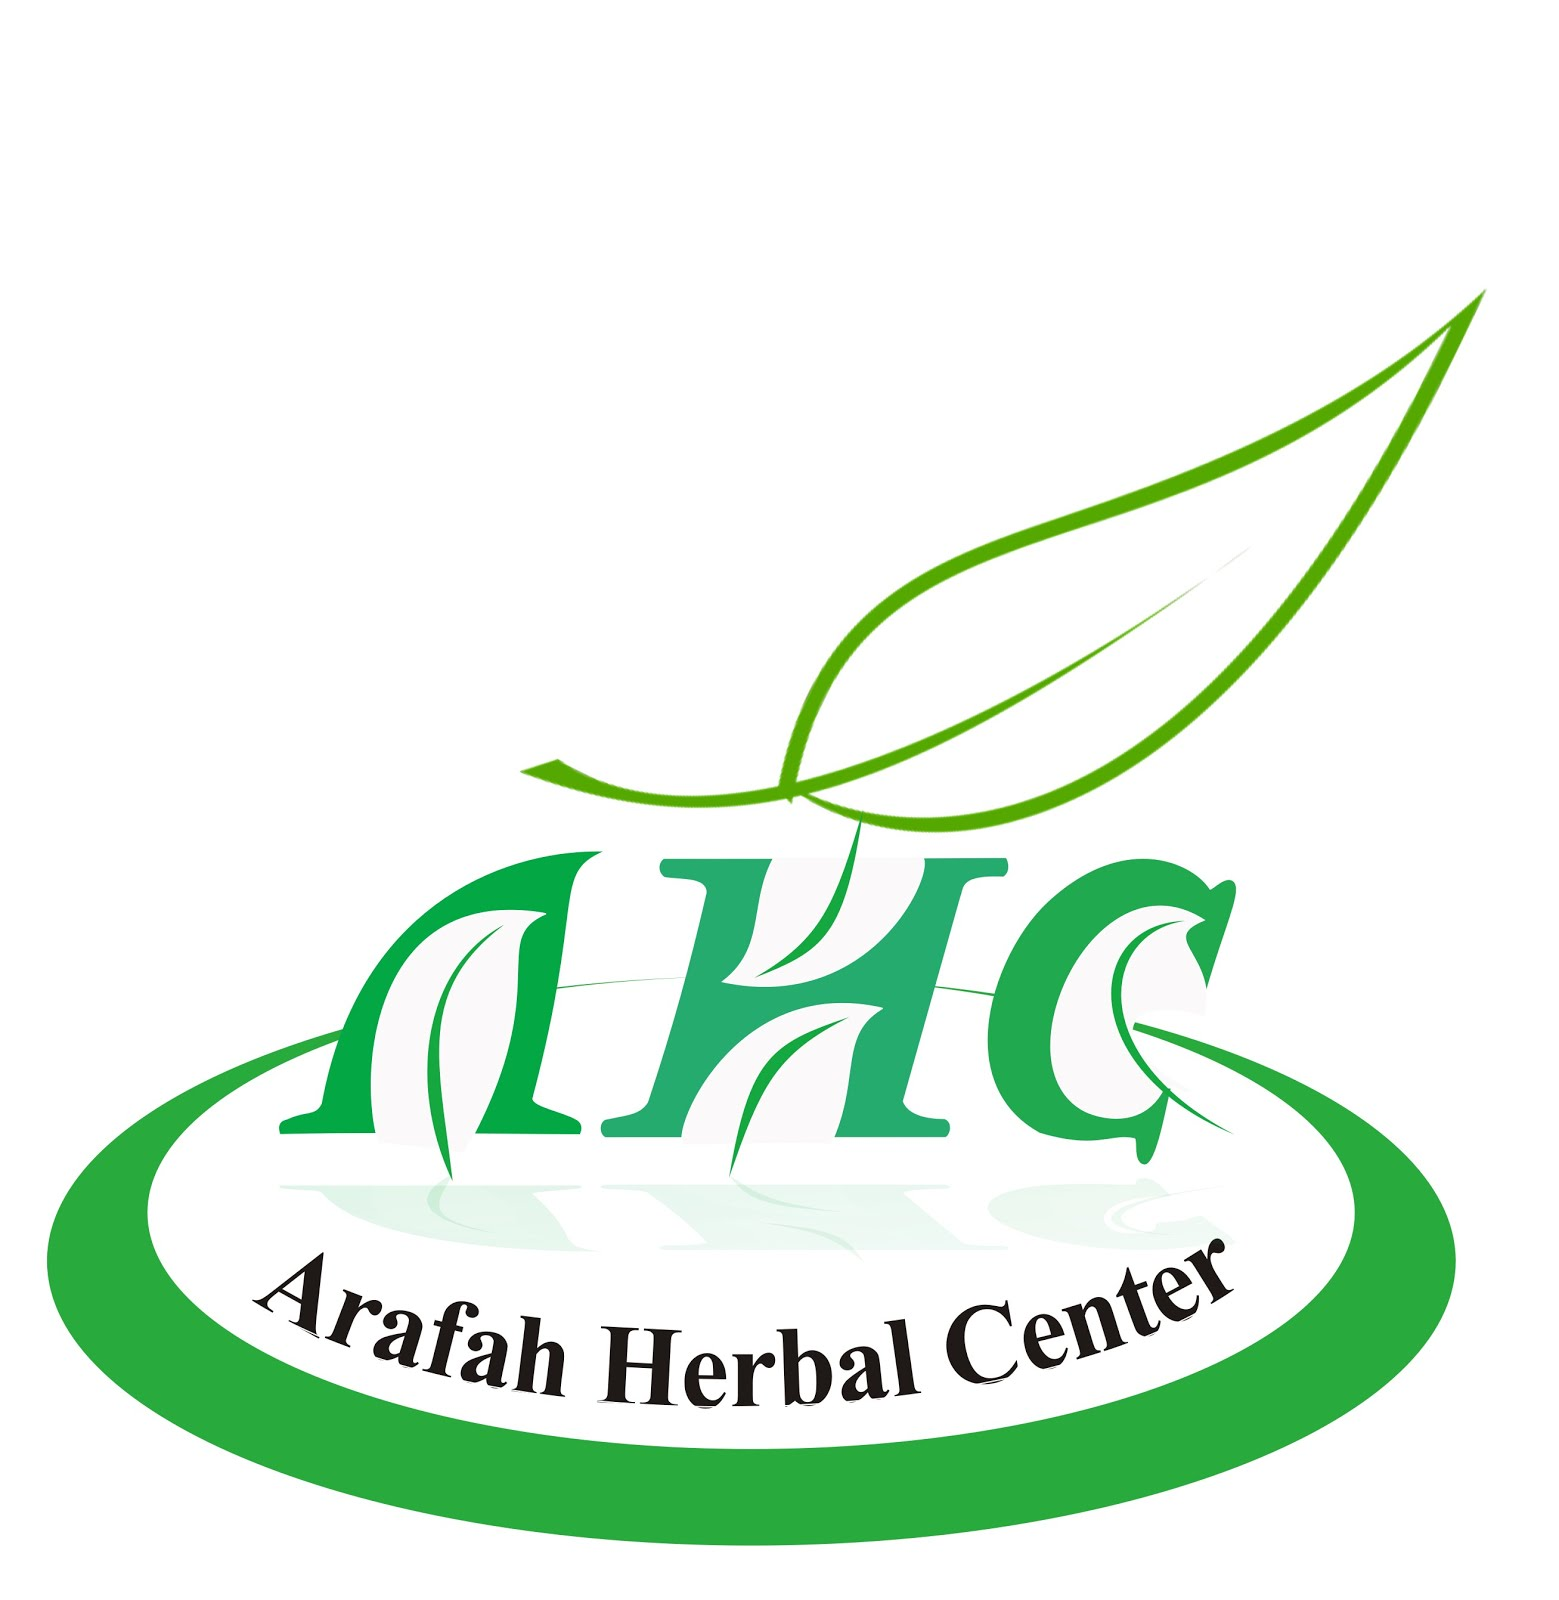 Arafah Herbal Center (AHC)